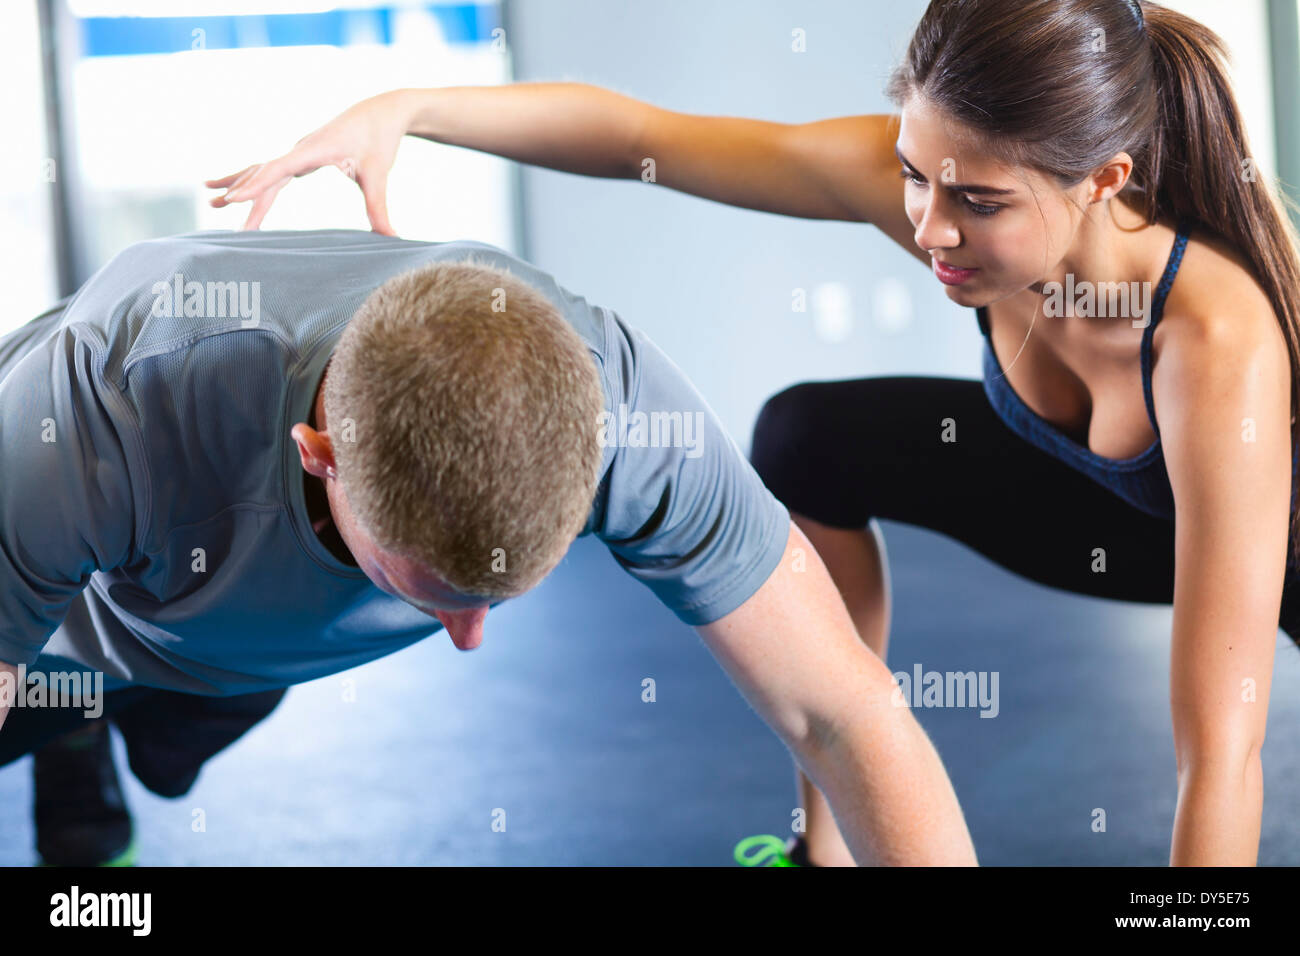 Couple helping each other in gym - Stock Image